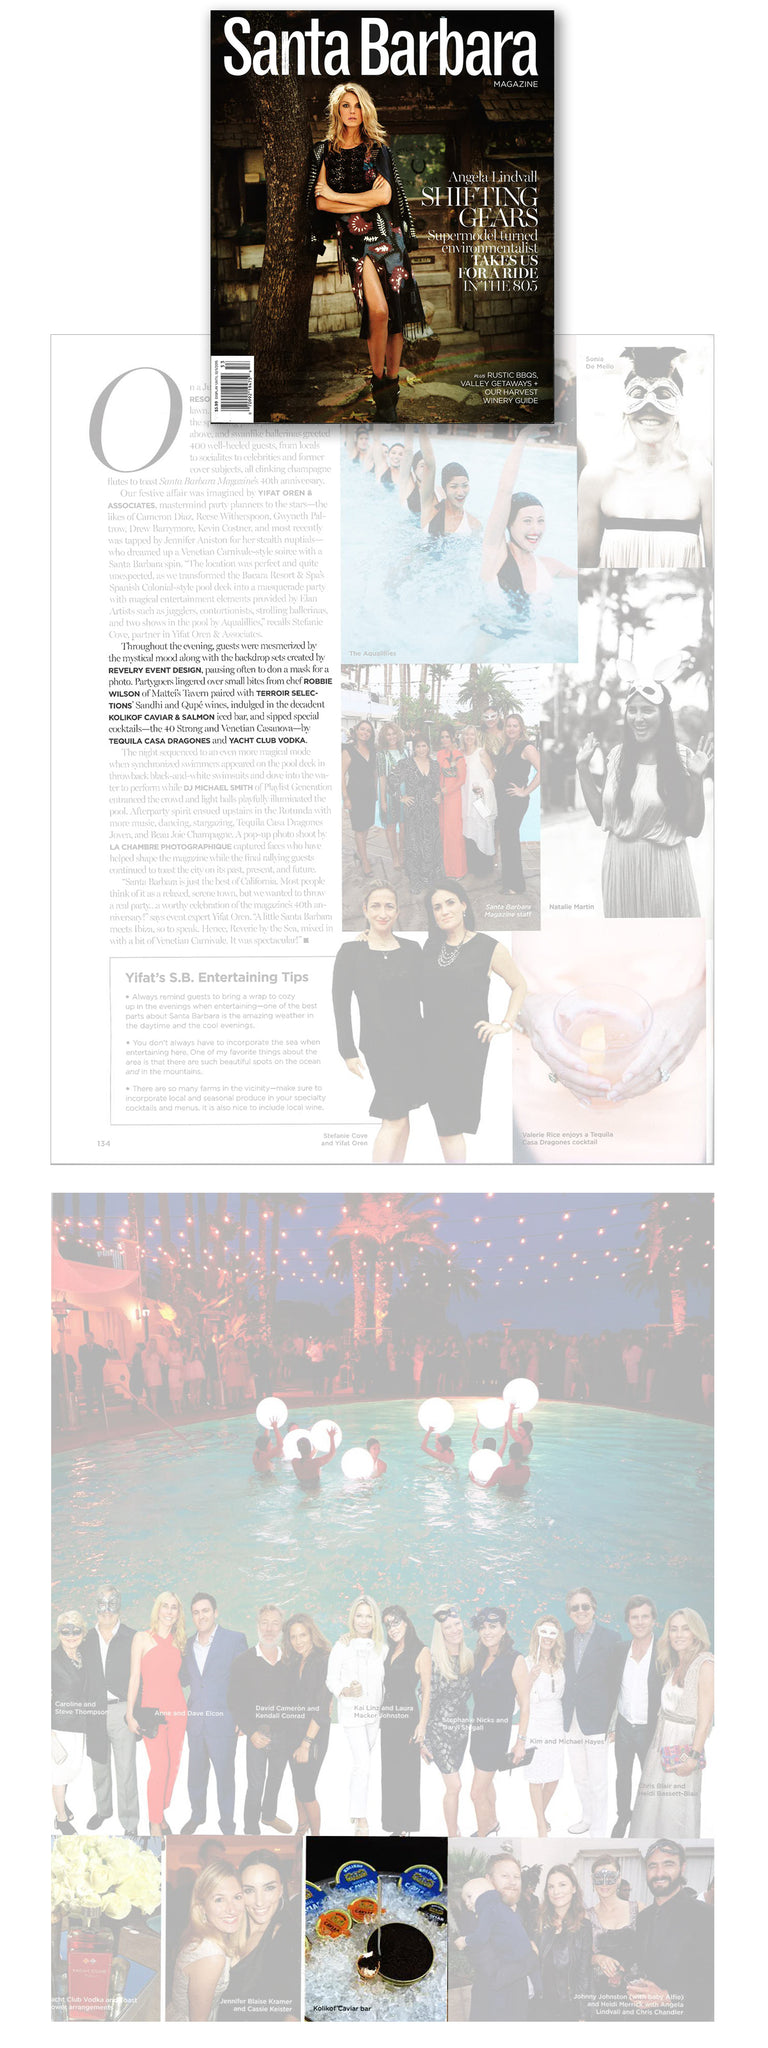 Kolikof Caviar attends Santa Barbara Magazine 25th Anniversary Party